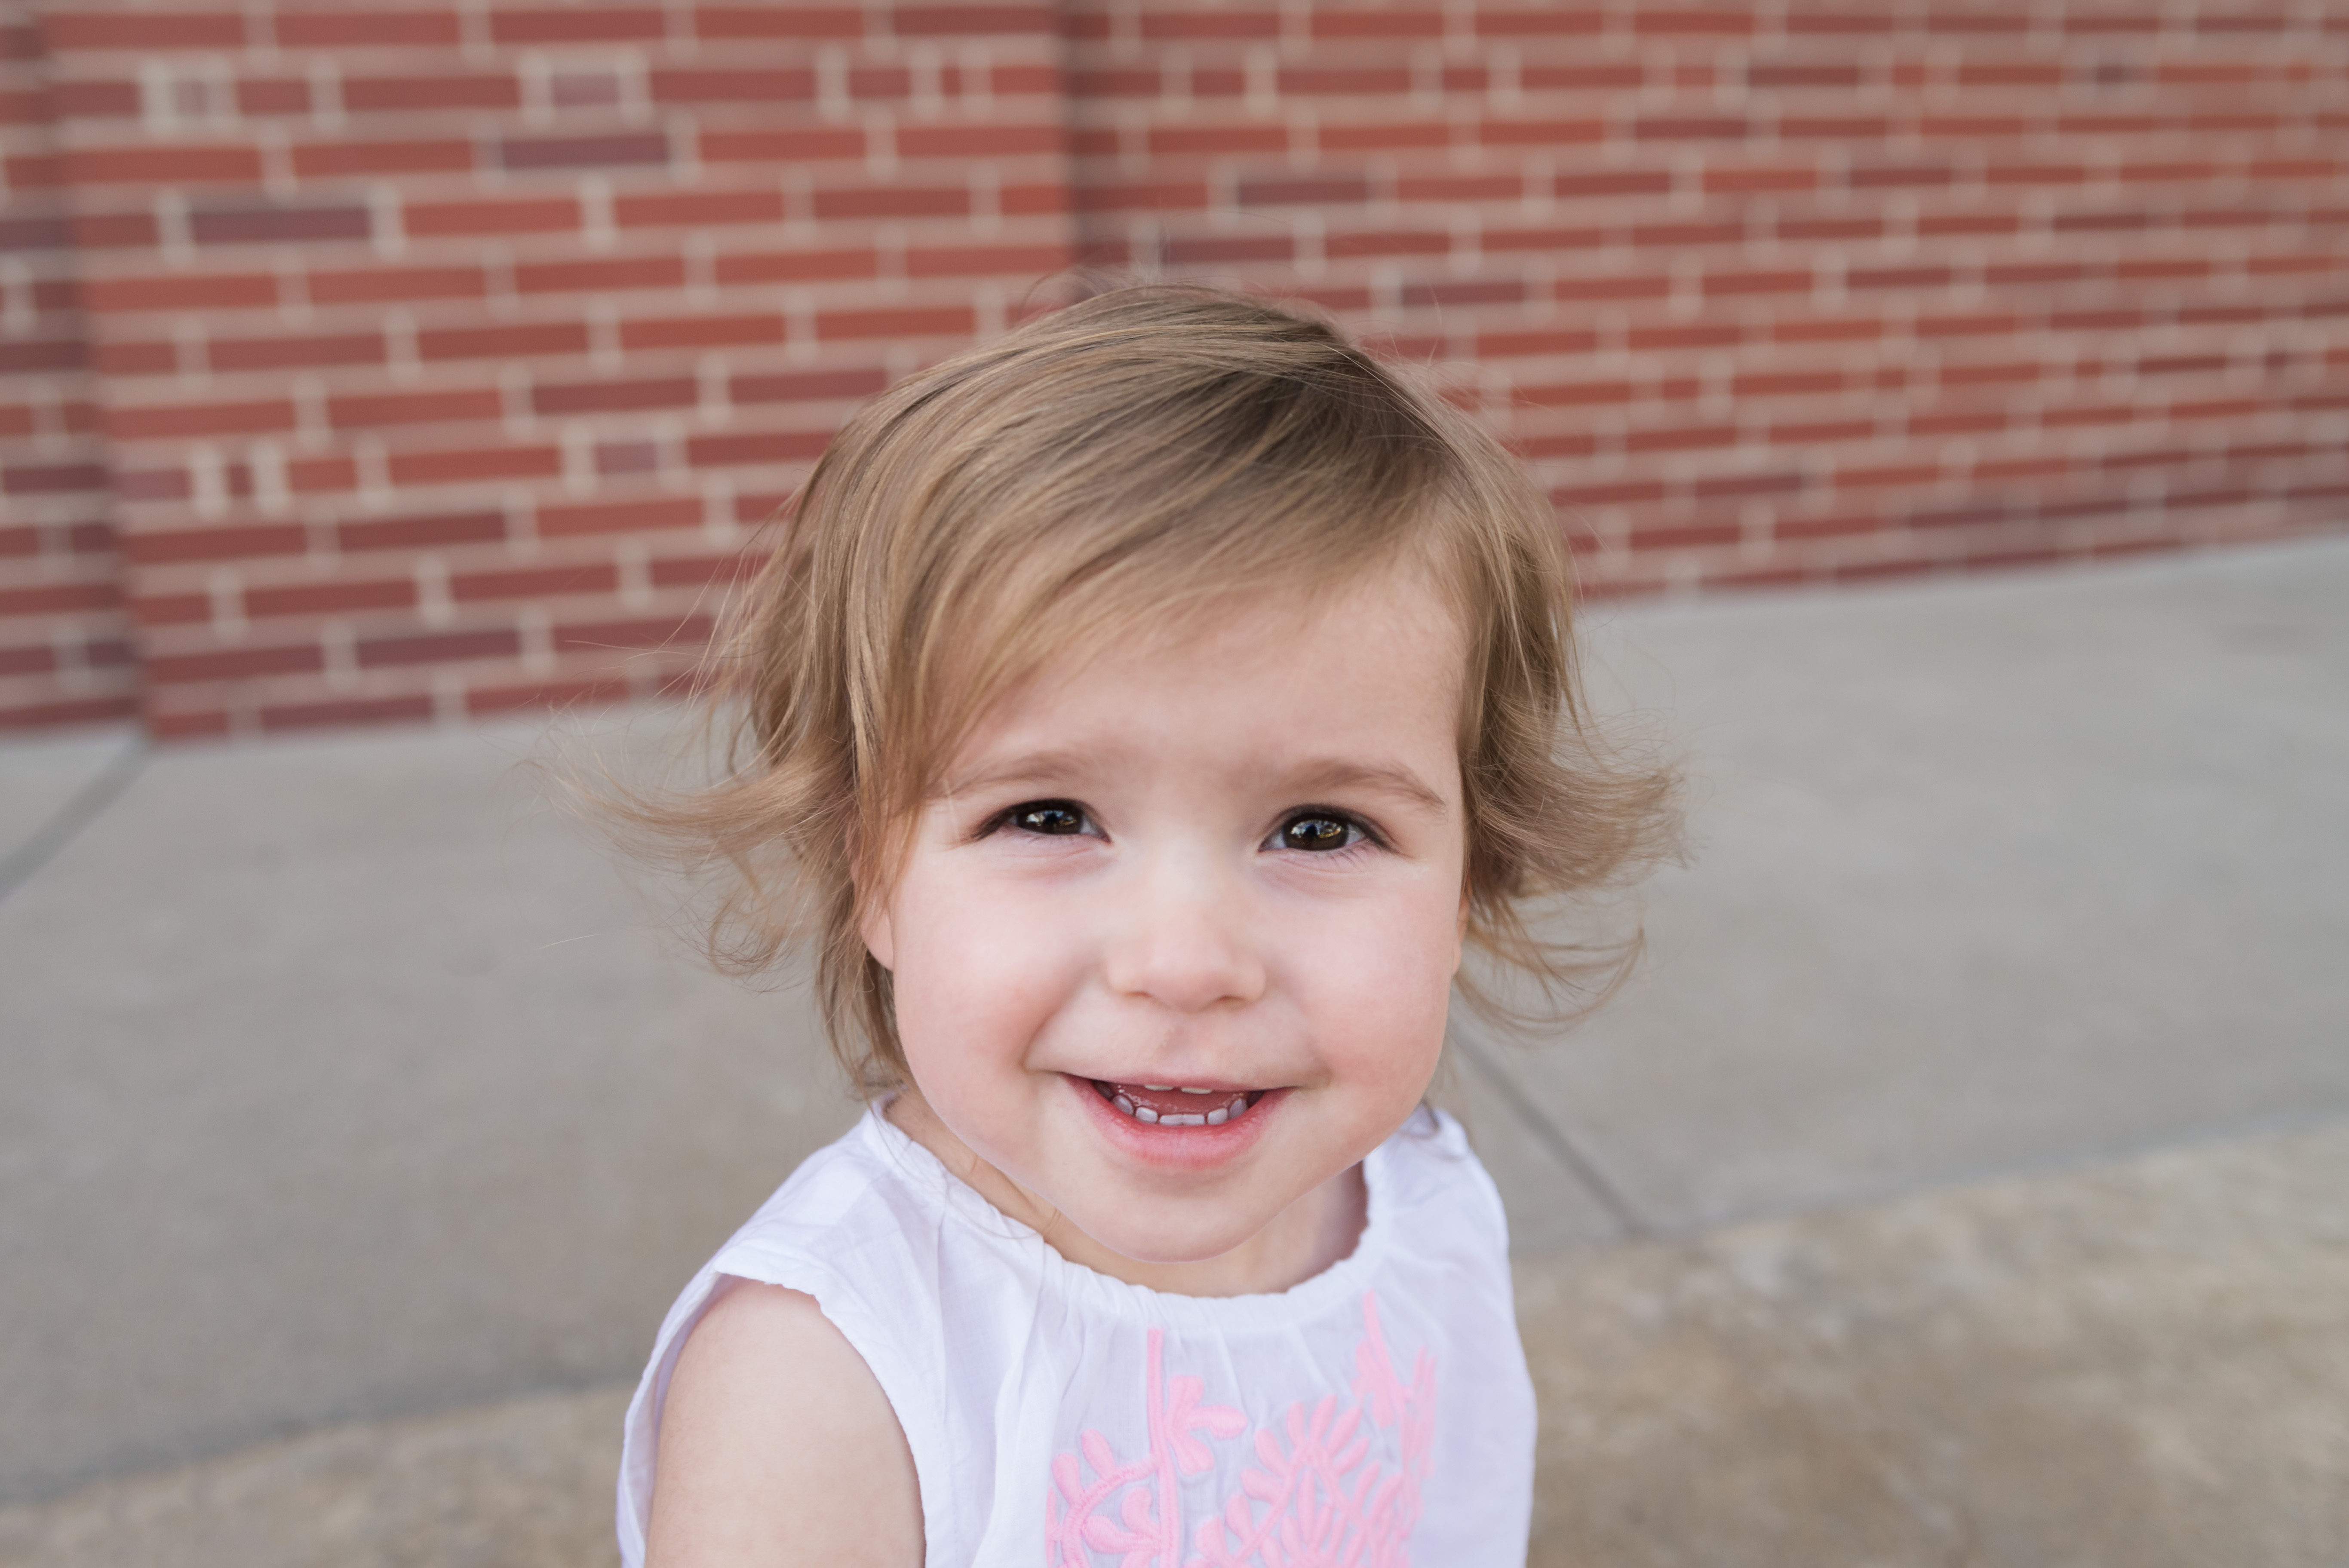 A child smiles for a photo in the NewBo area of Cedar Rapids during her photography session